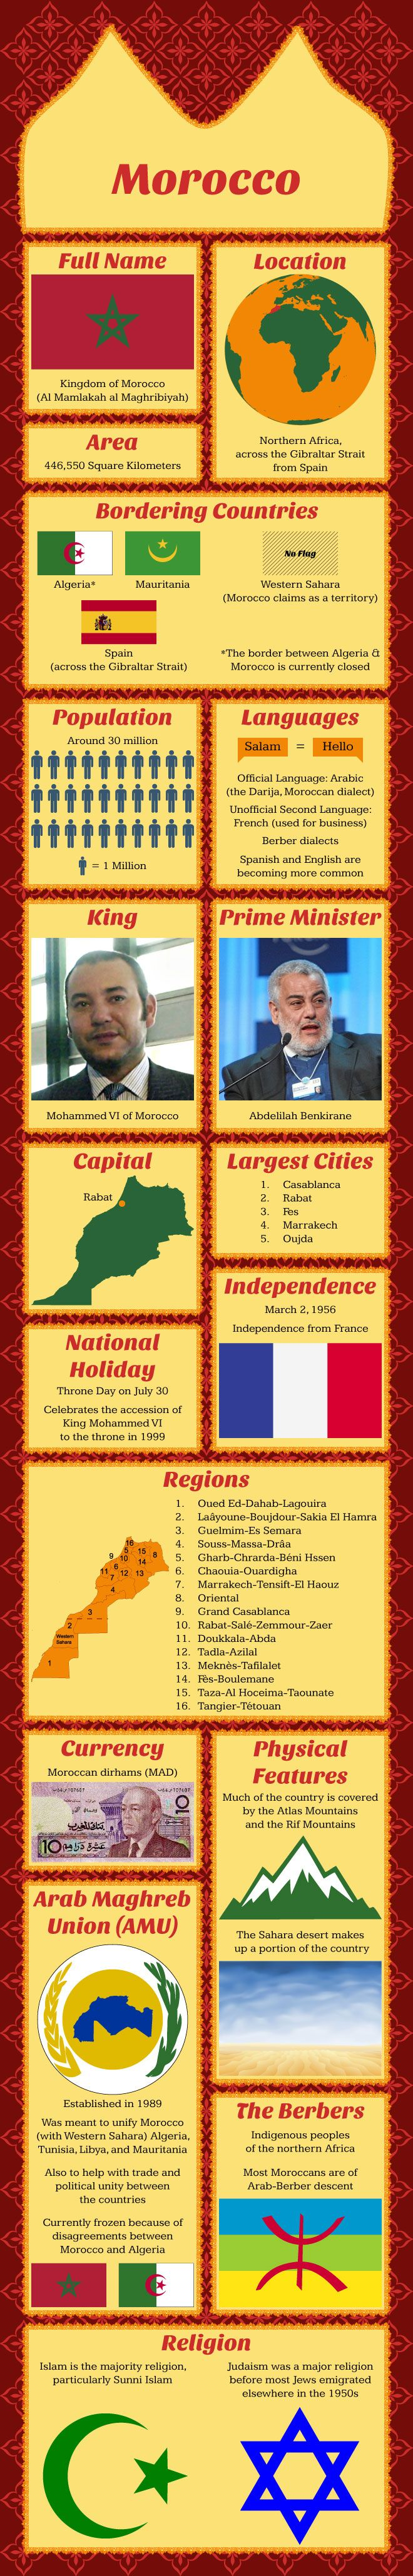 Infographic of Morocco Facts